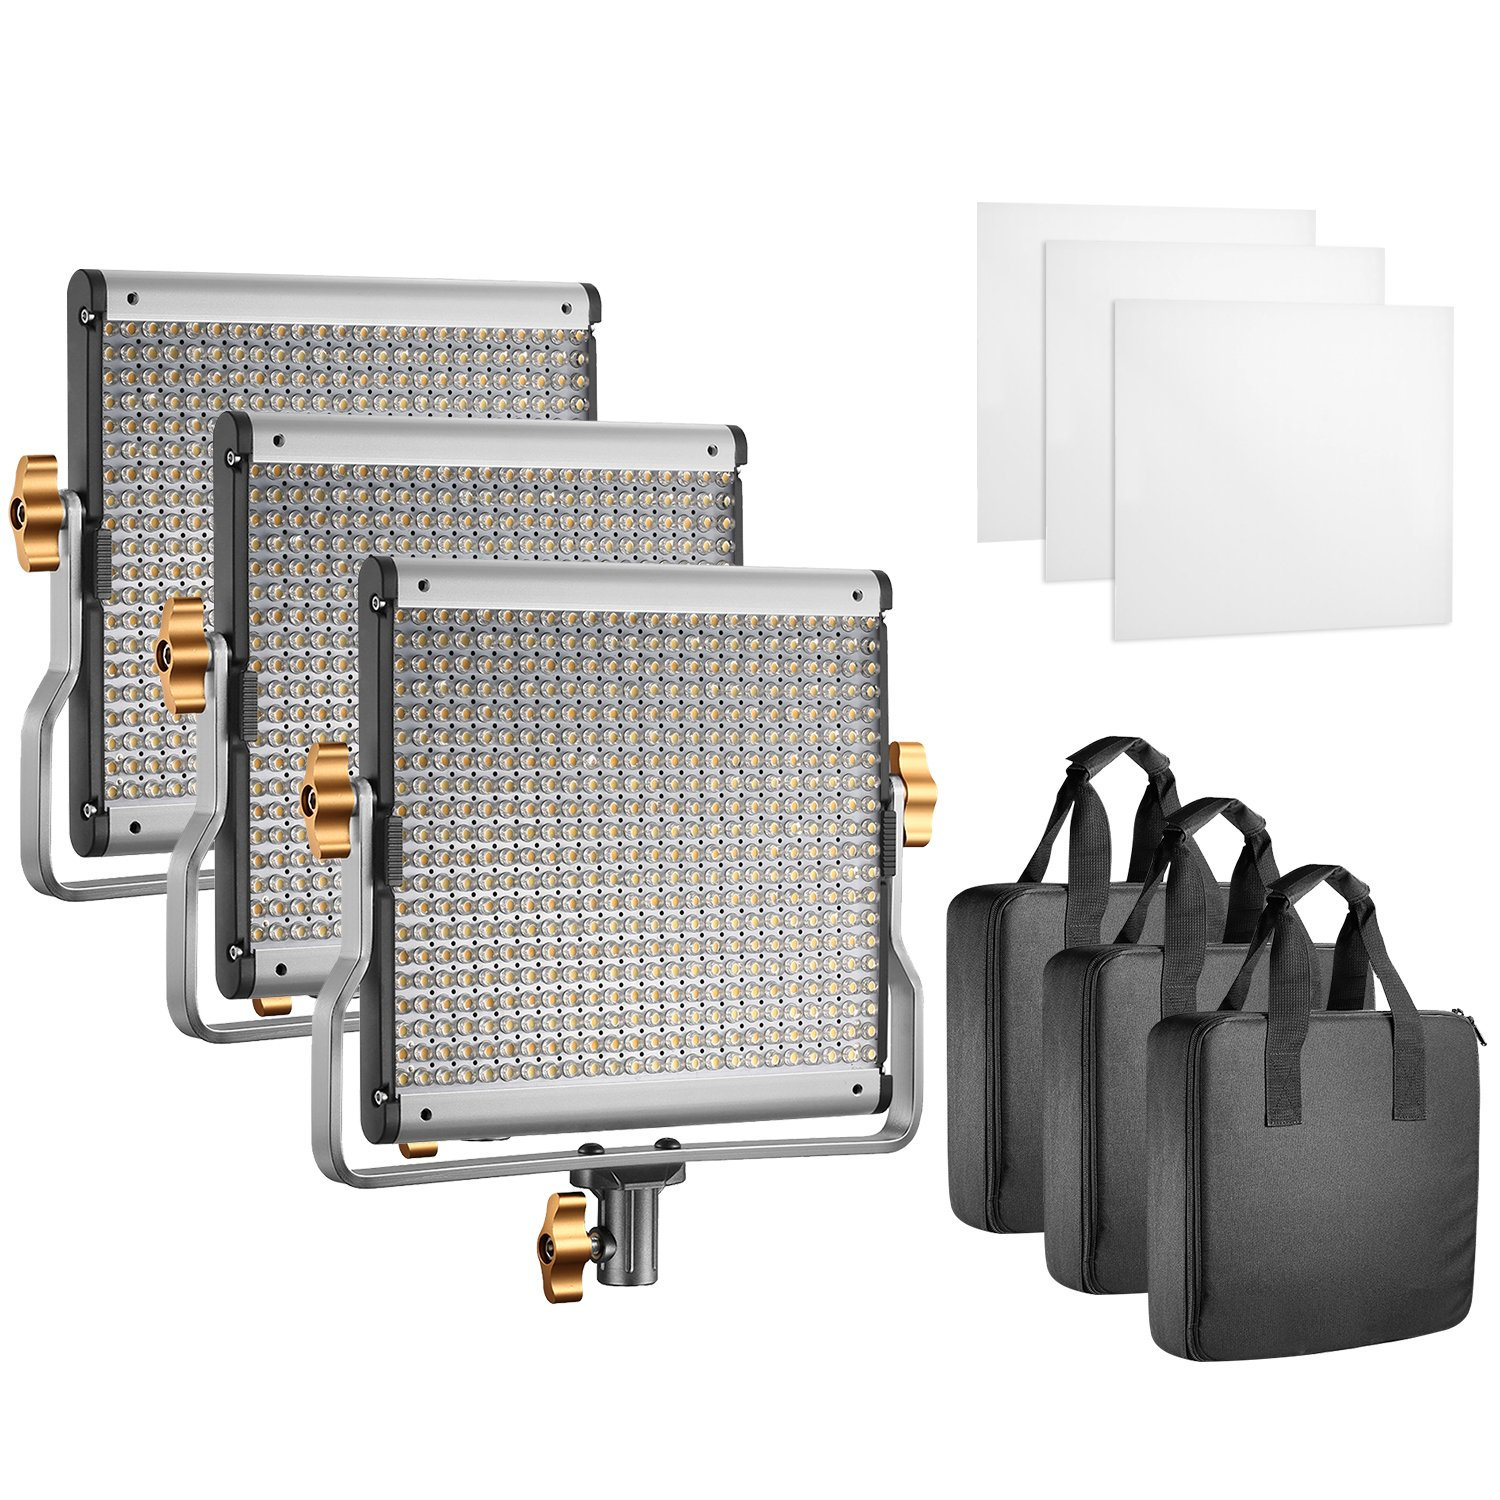 Neewer Professional Photography 3-Pack 480 LED Video Light - Dimmable Bi-Color LED Panel with U Bracket (3200-5600K, CRI 96+) for Photo Studio Portrait, Product, YouTube Video Shooting by Neewer